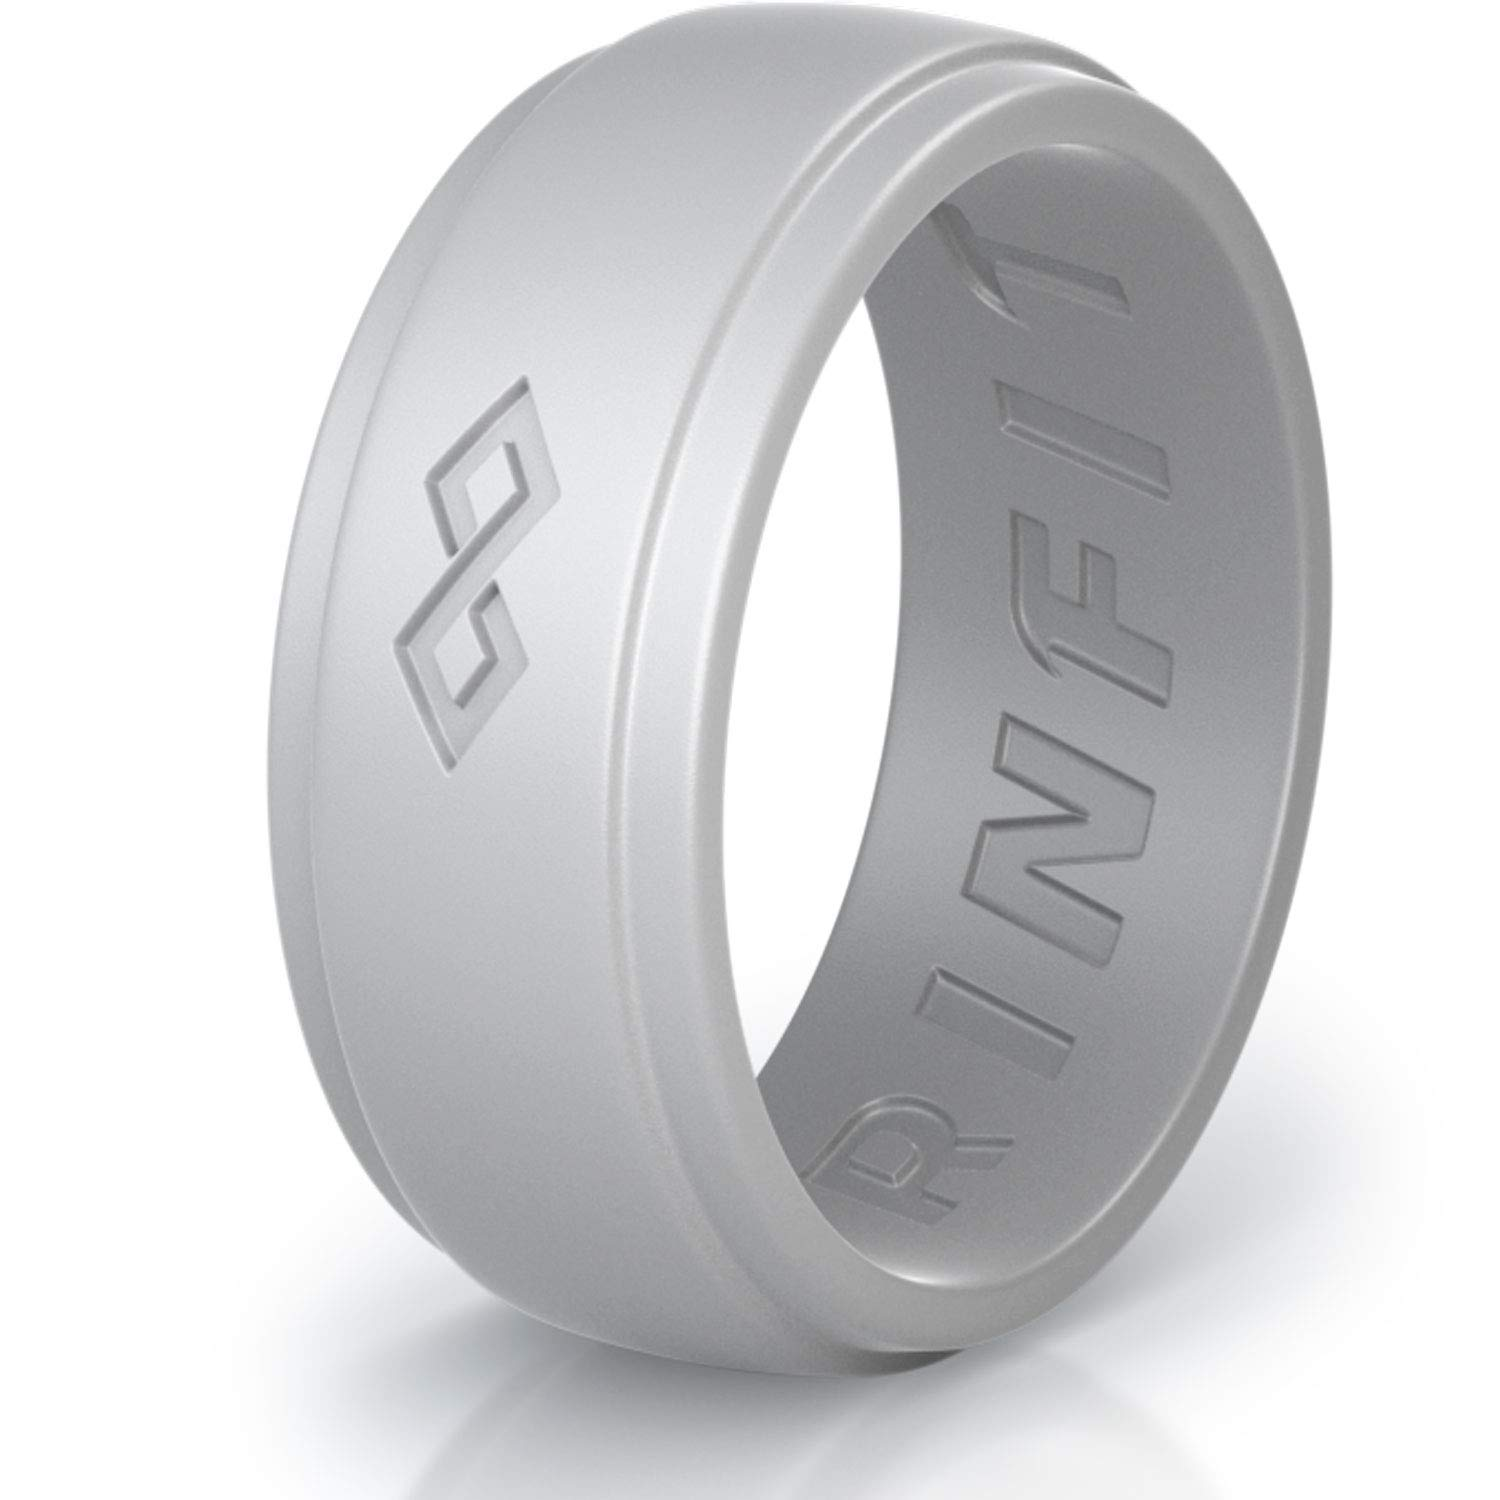 Safe /& Soft Mens Silicon Rubber Wedding Ring Comfortable /& Durable Wedding Band Replacement U.S Design Patent Pending Designed Size 7-14 1 or 3 Rings Pack Rinfit Silicone Wedding Ring for Men